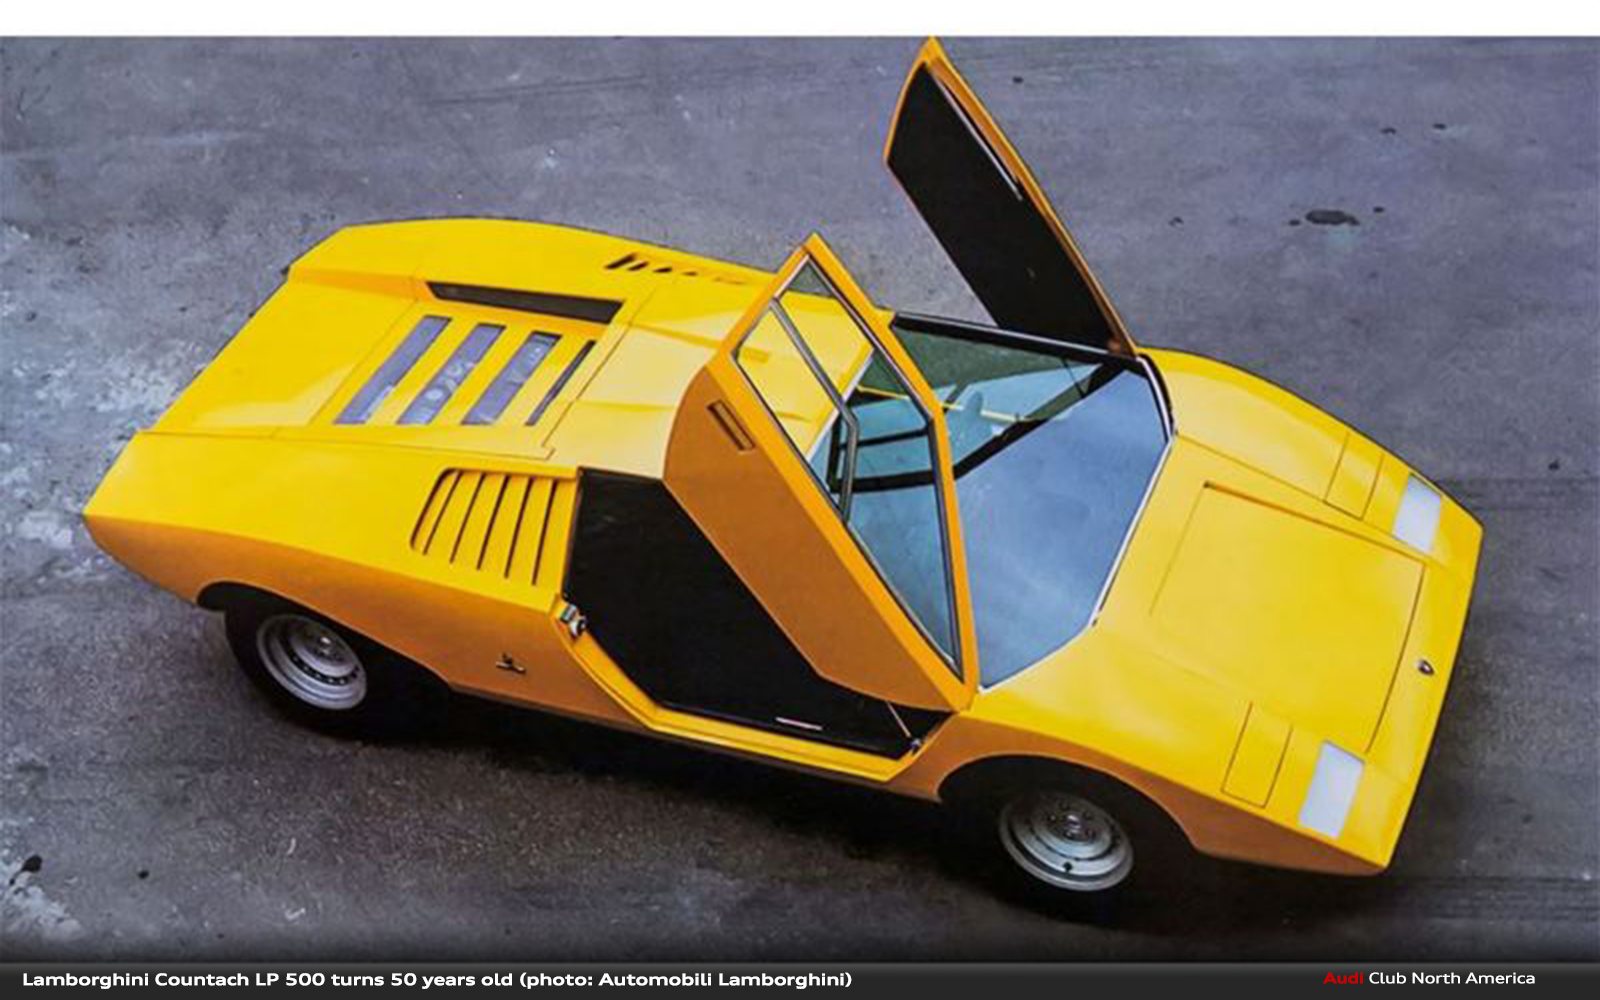 Lamborghini Countach LP 500 turned 50 years old on March 11, 2021